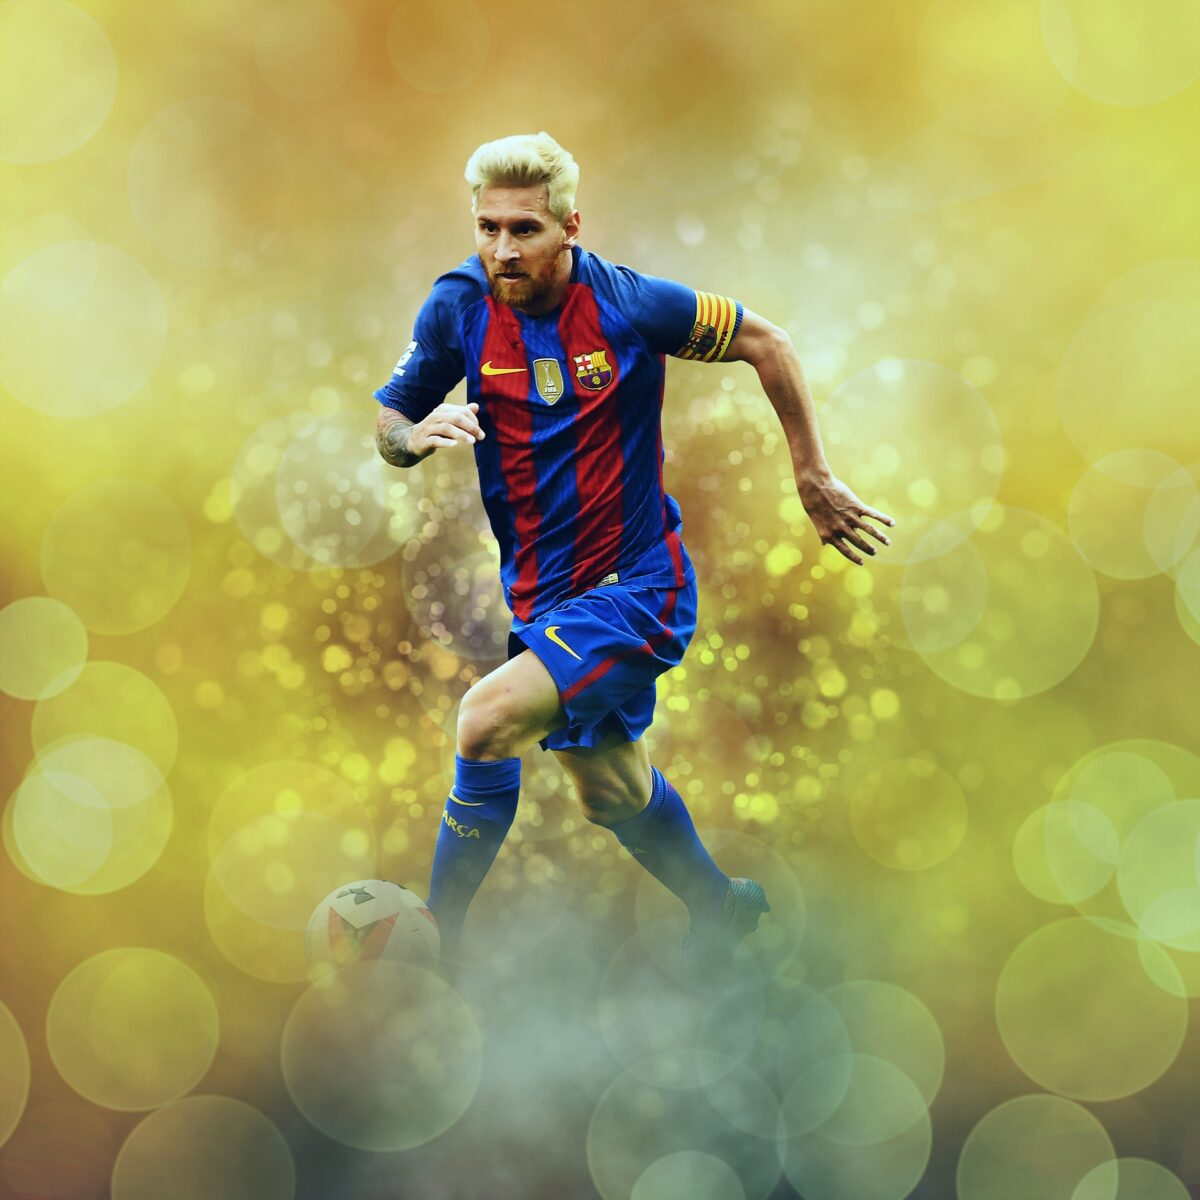 Is Messi the Best player in the world?